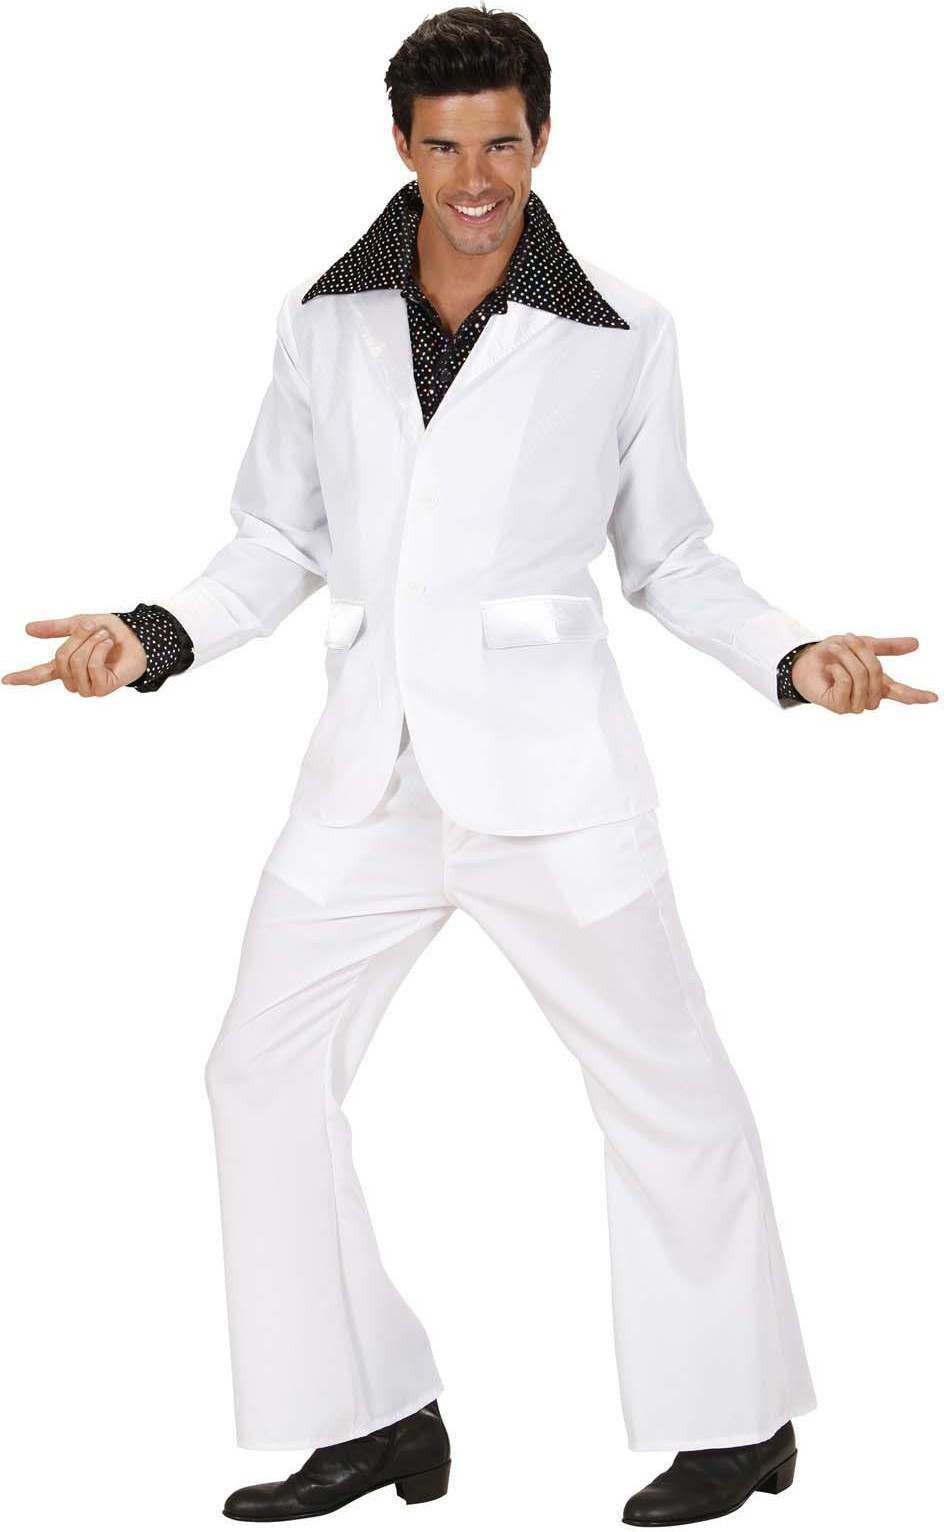 Mens White Party Suits (Jacket Pants) Disco Outfit - Chest 46-48 (White)